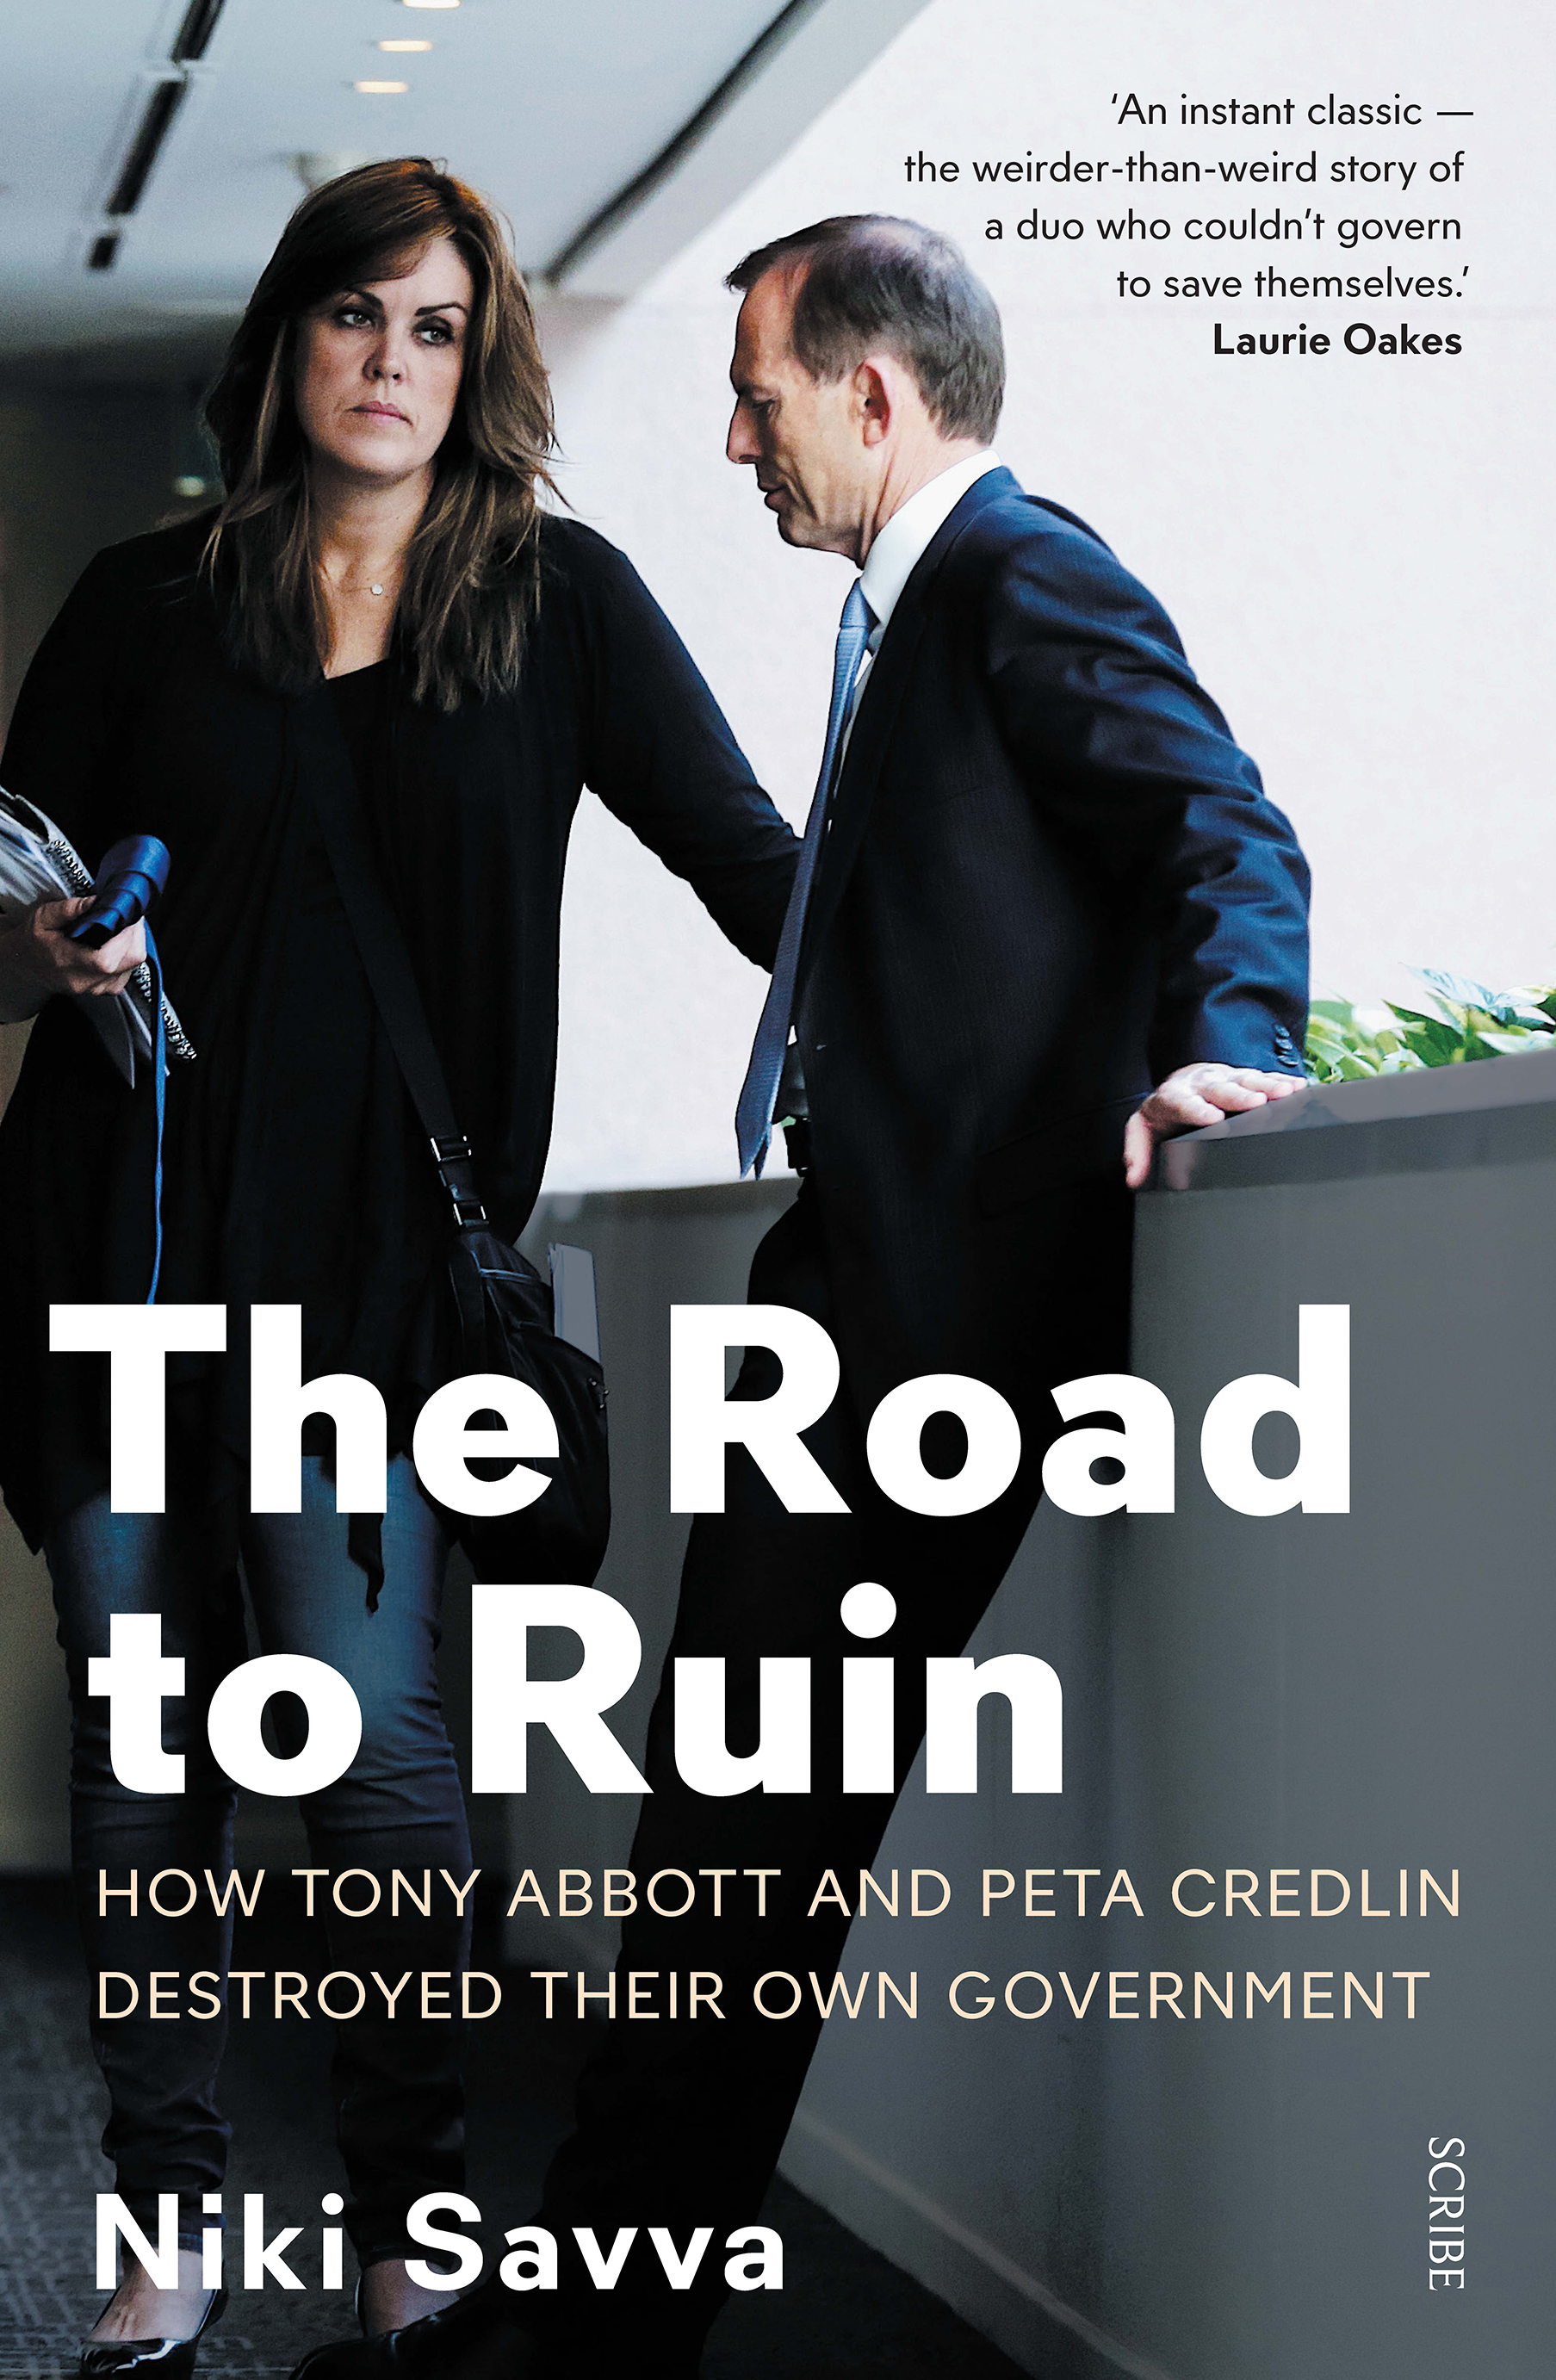 The Road to Ruin by Niki Savva, ISBN: 9781925321401